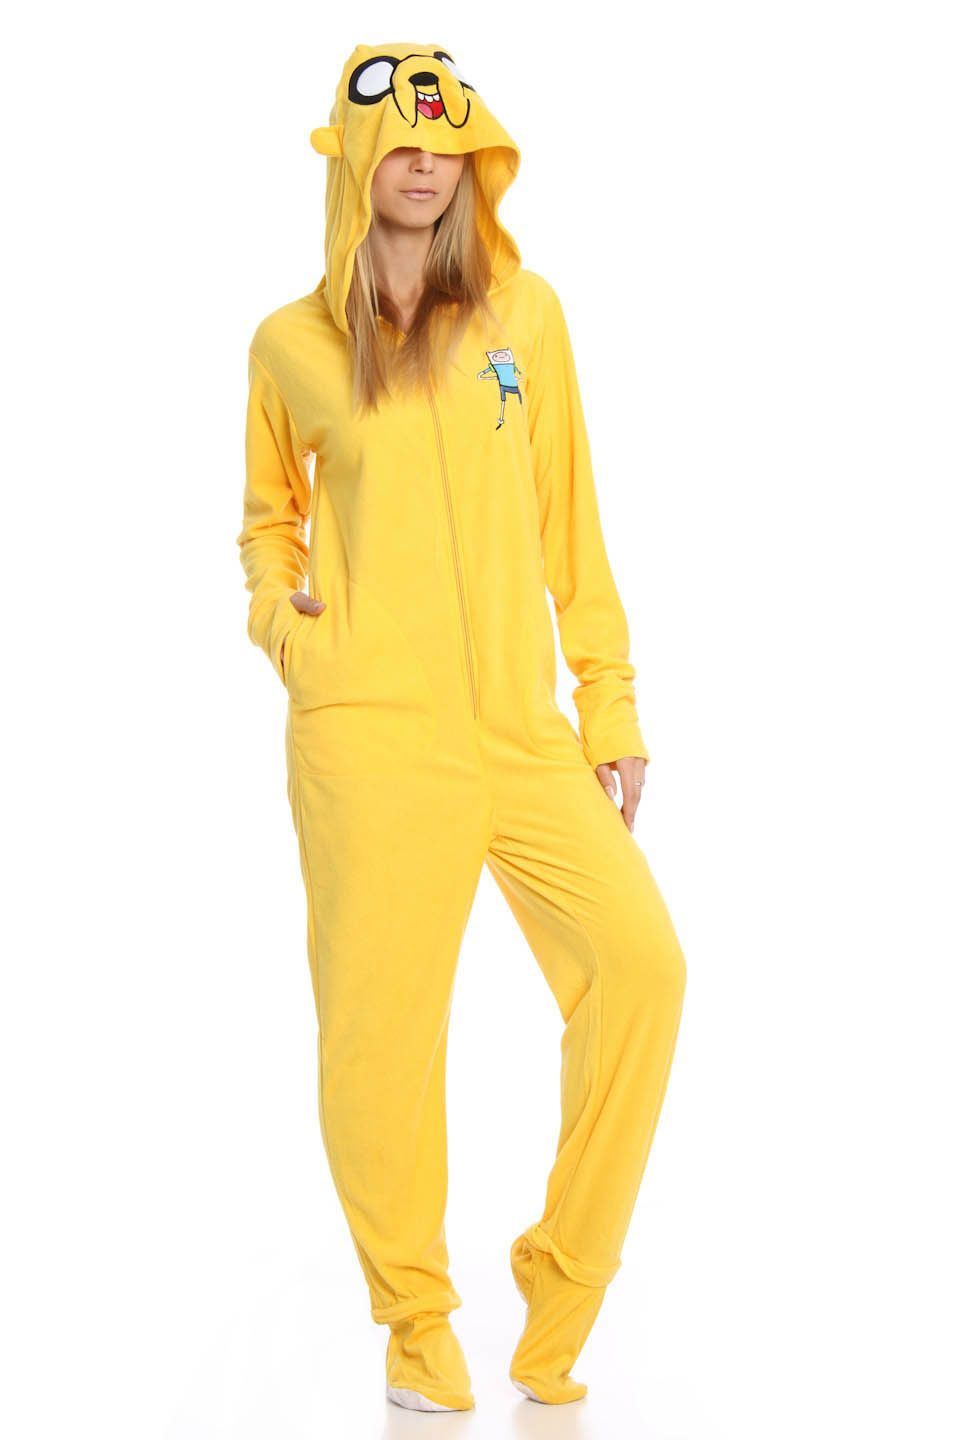 464236c5cb UnderGirl Unisex Jake the Dog Adventure Time Onesie in Yellow - Beyond the  Rack